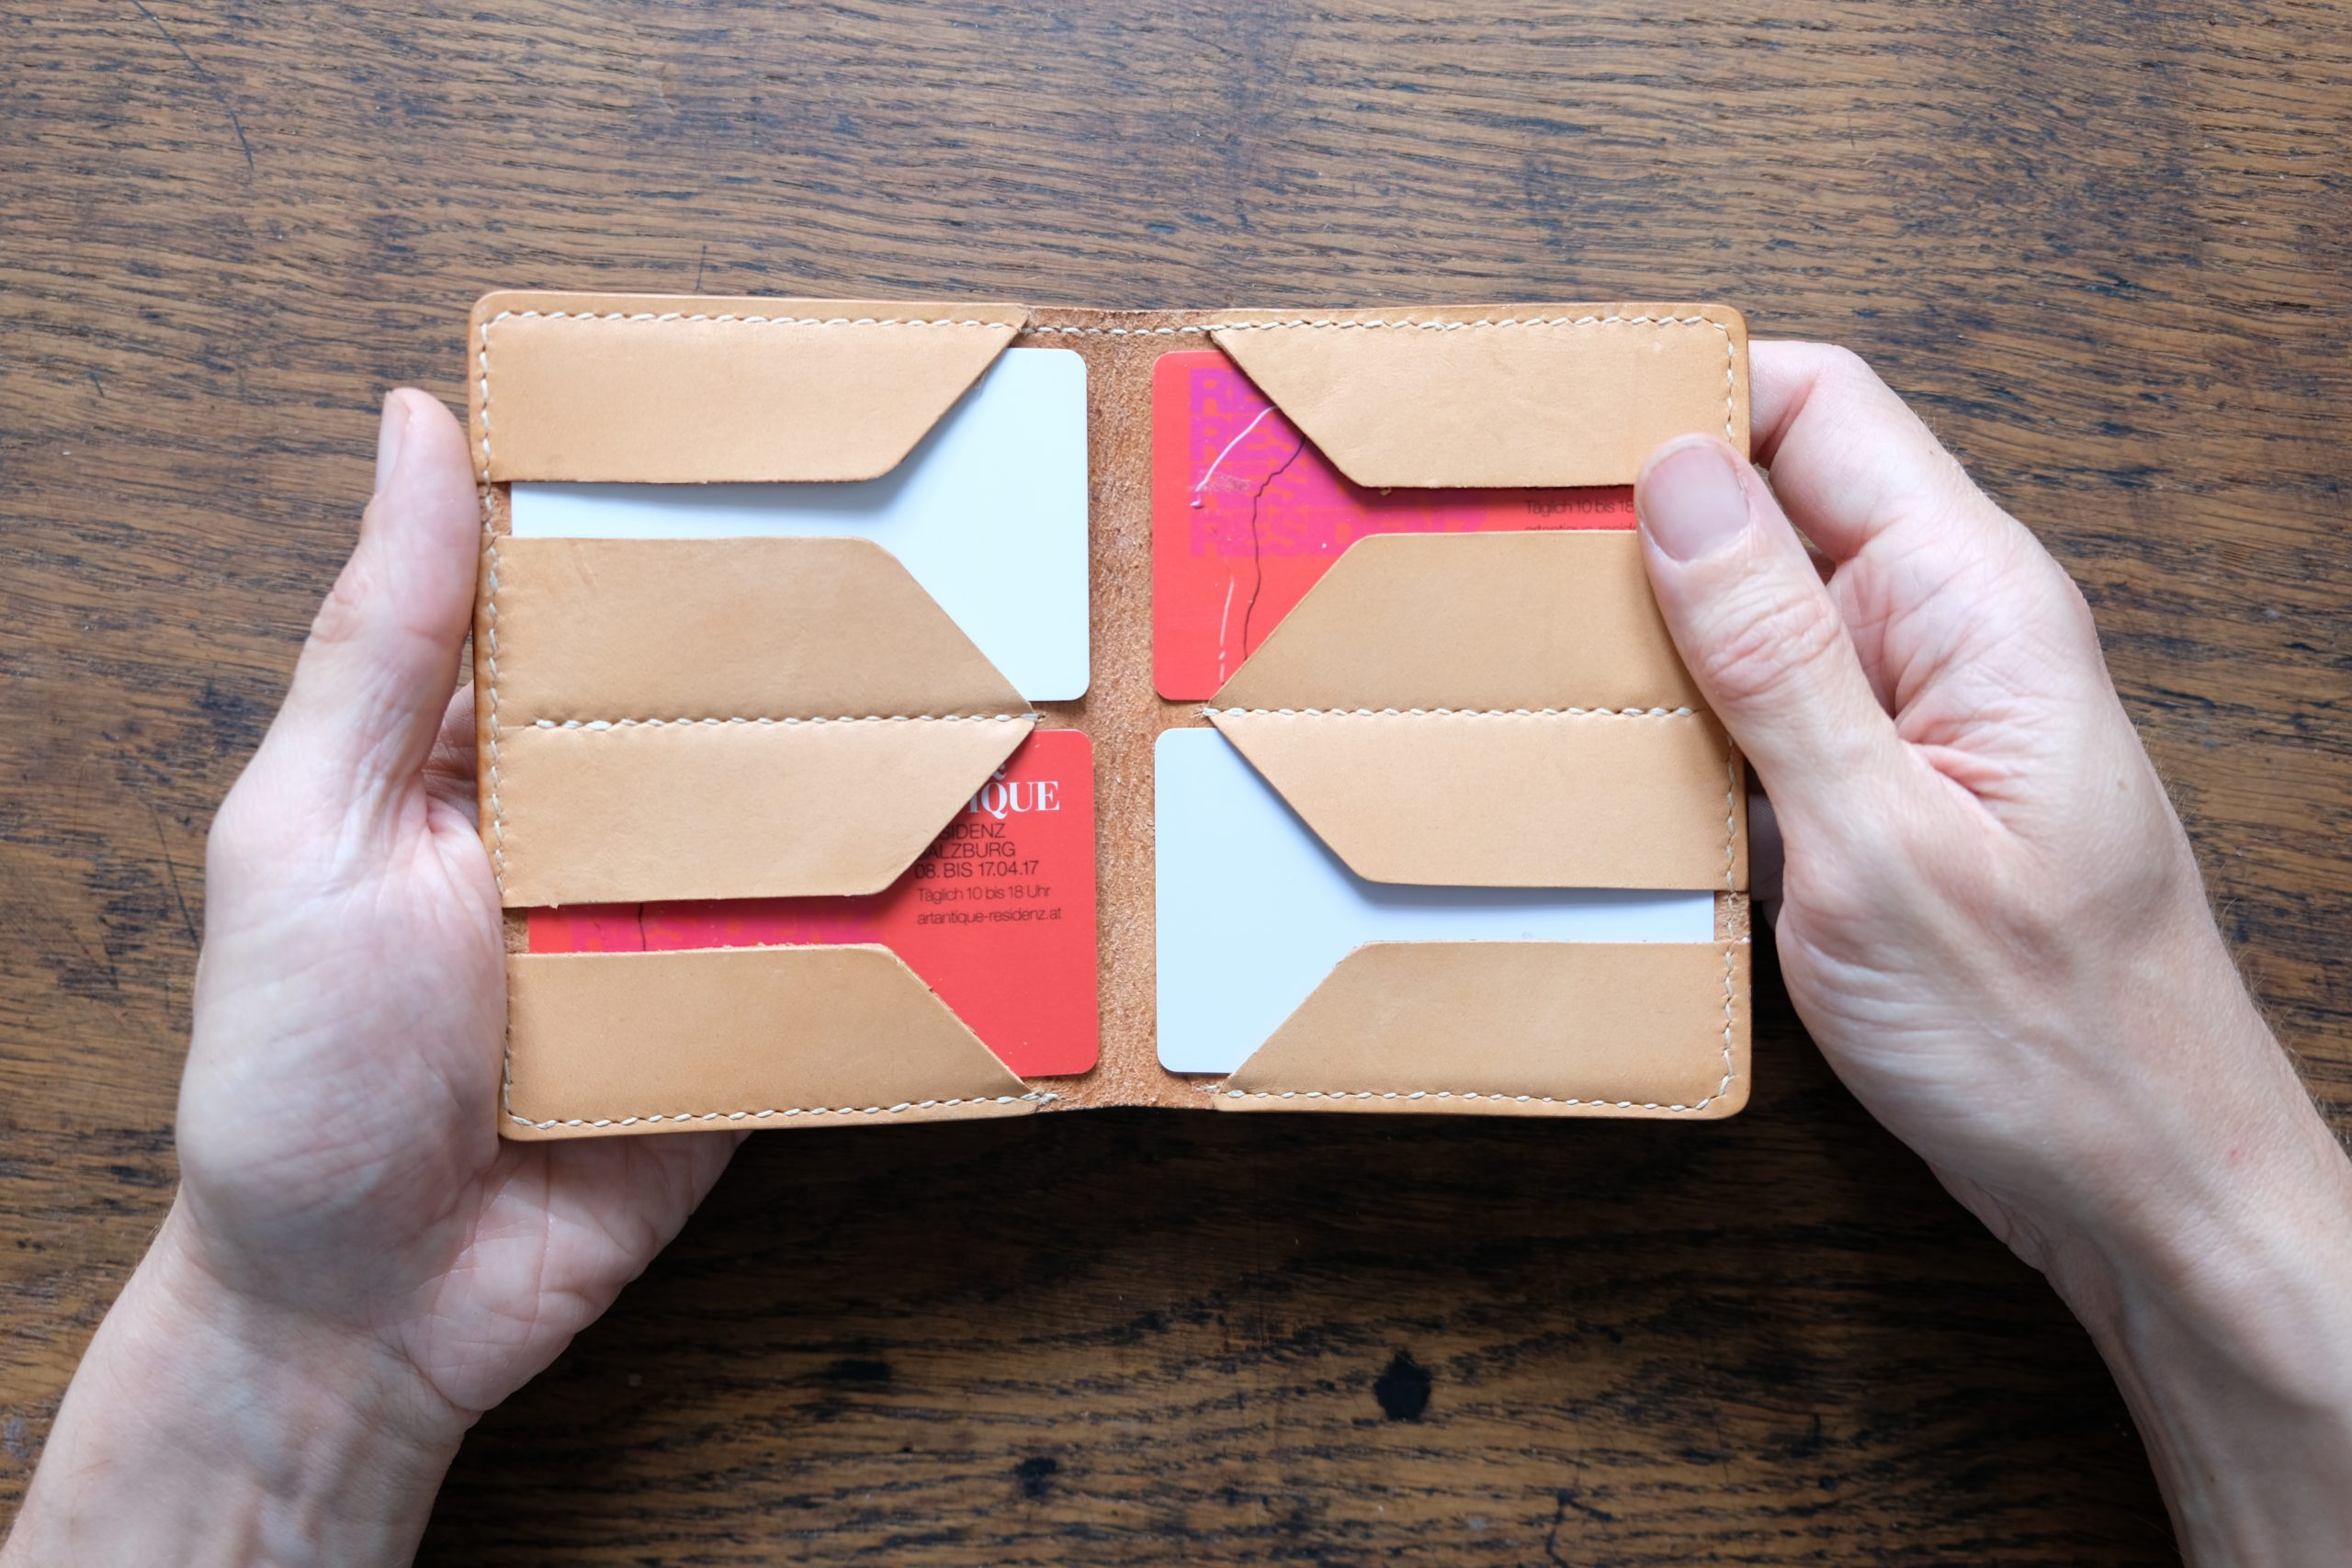 lerif designs large format leather bifold wallet held by hands on wood background demonstrating card pockets